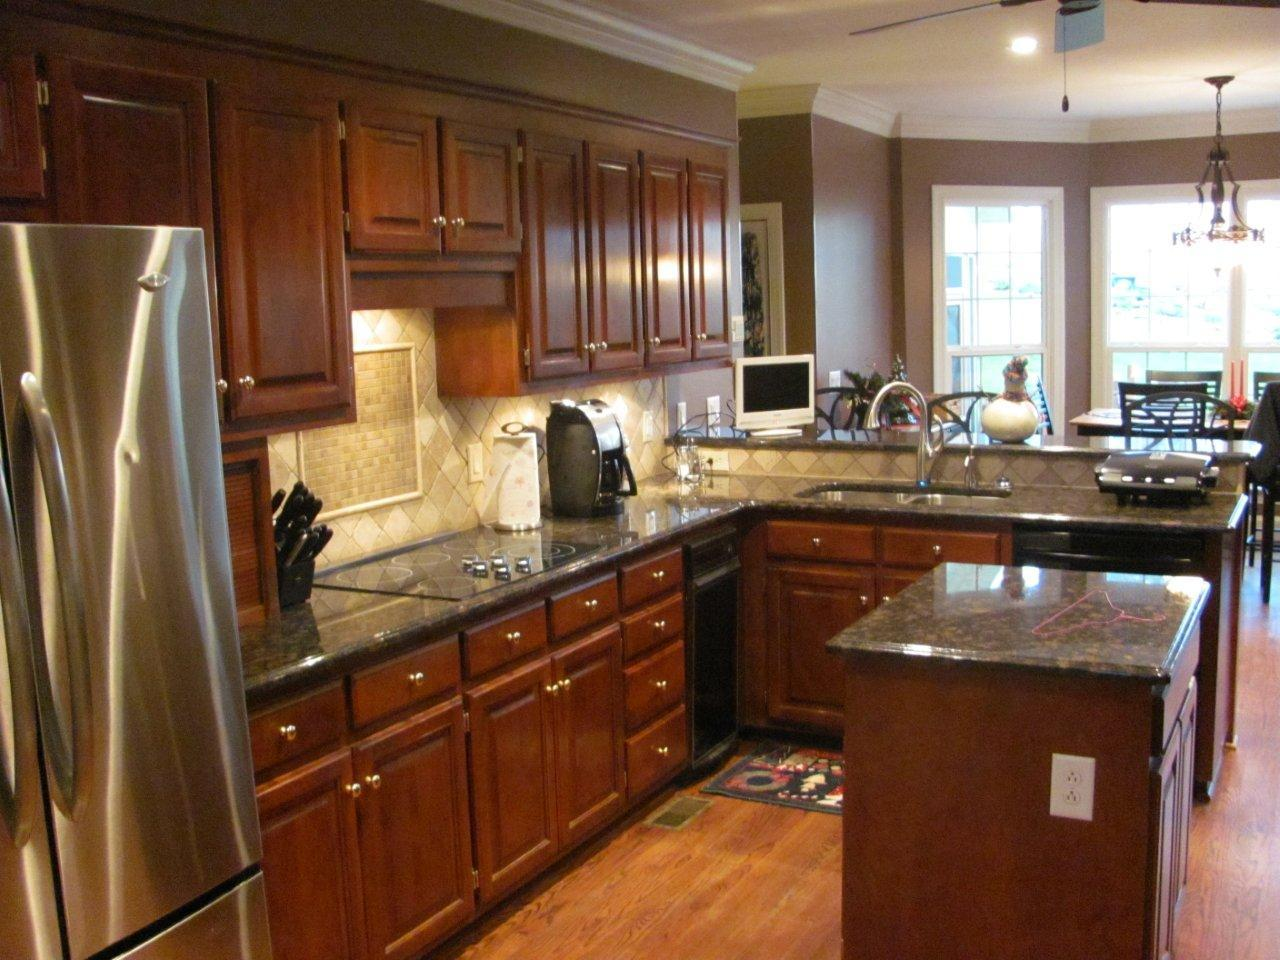 Florida Kitchen Design Gallery Home Business Guyson Construction Roofing Remodel